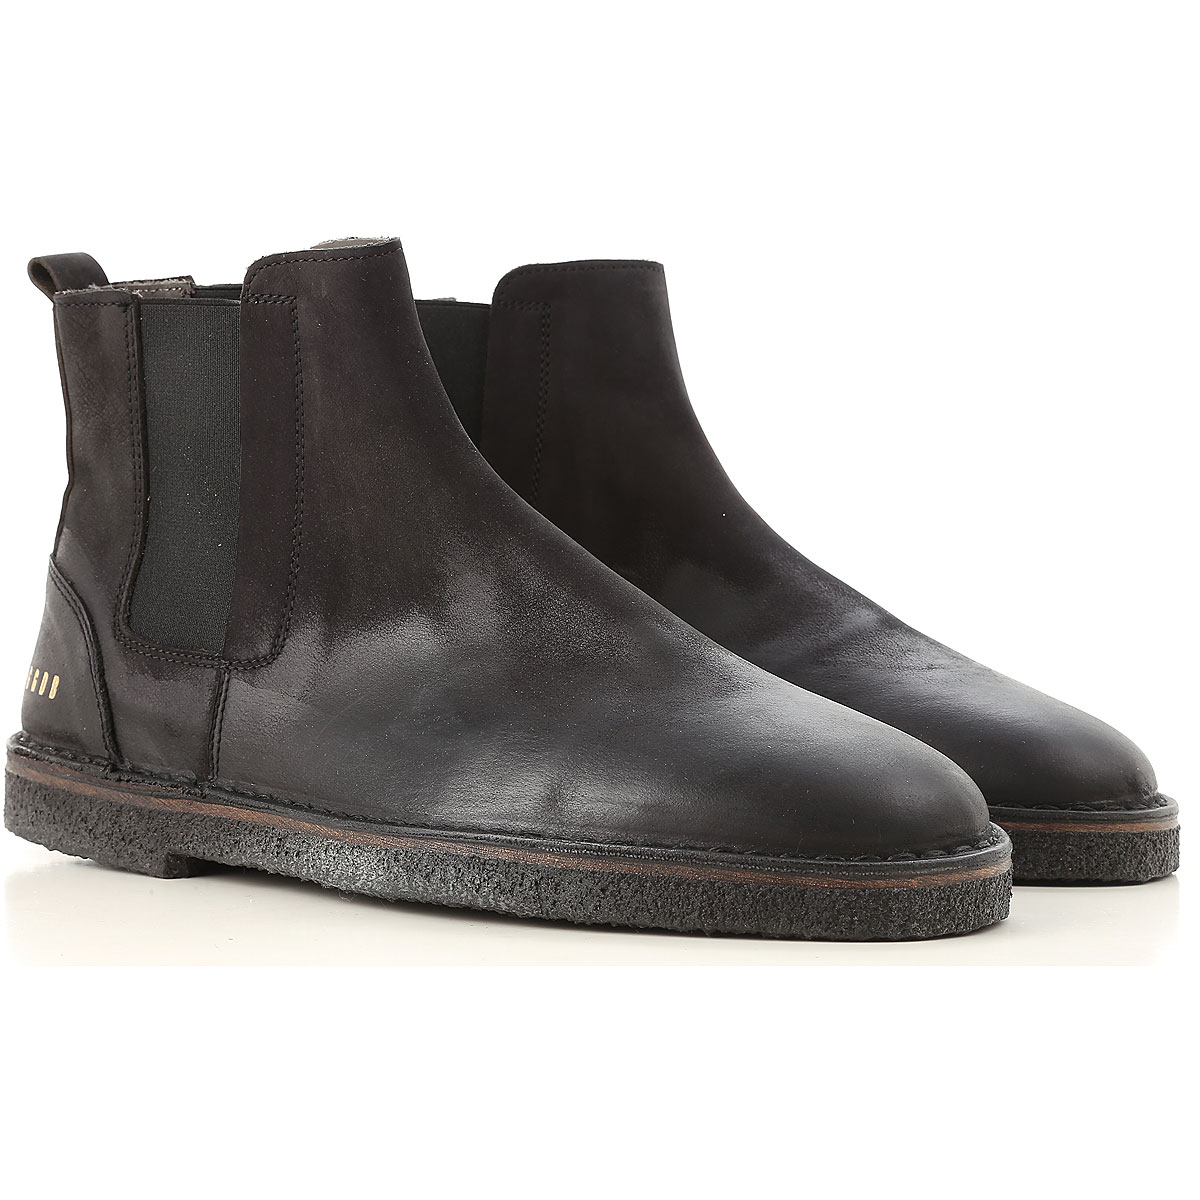 Image of Golden Goose Boots for Men, Booties, Black, Leather, 2017, 10 10.5 7.5 8 9